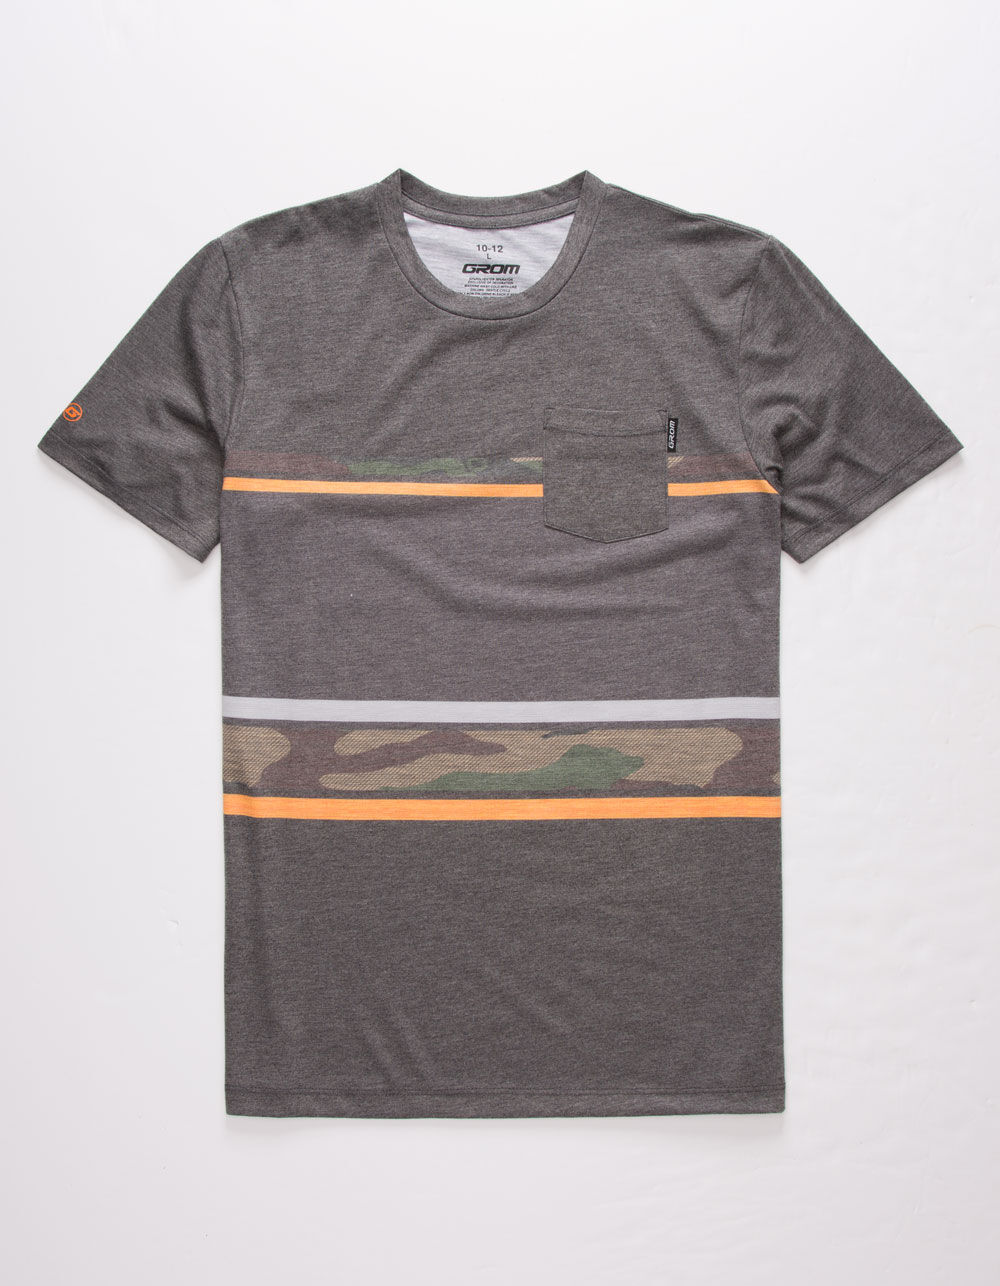 GROM Tailslide Boys Pocket Tee